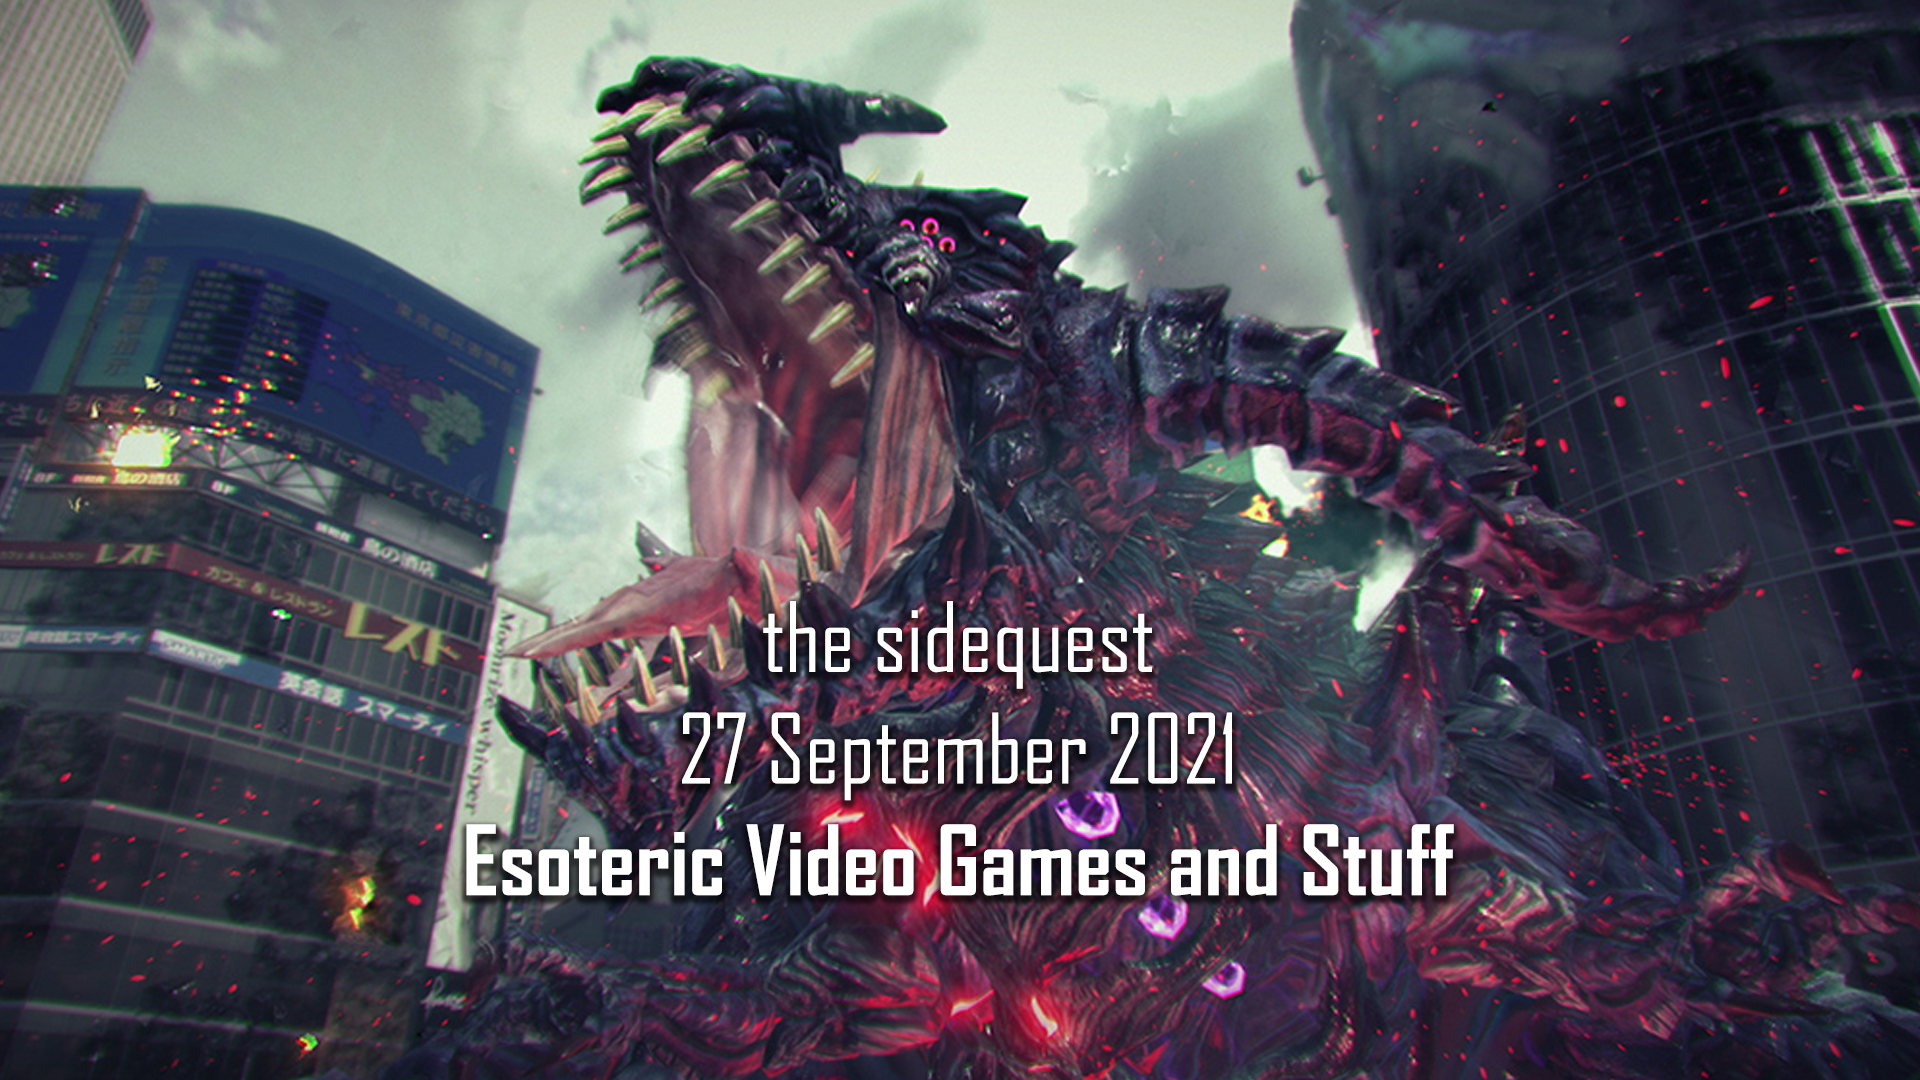 The SideQuest LIVE! September 27, 2021: Esoteric Video Games and Stuff